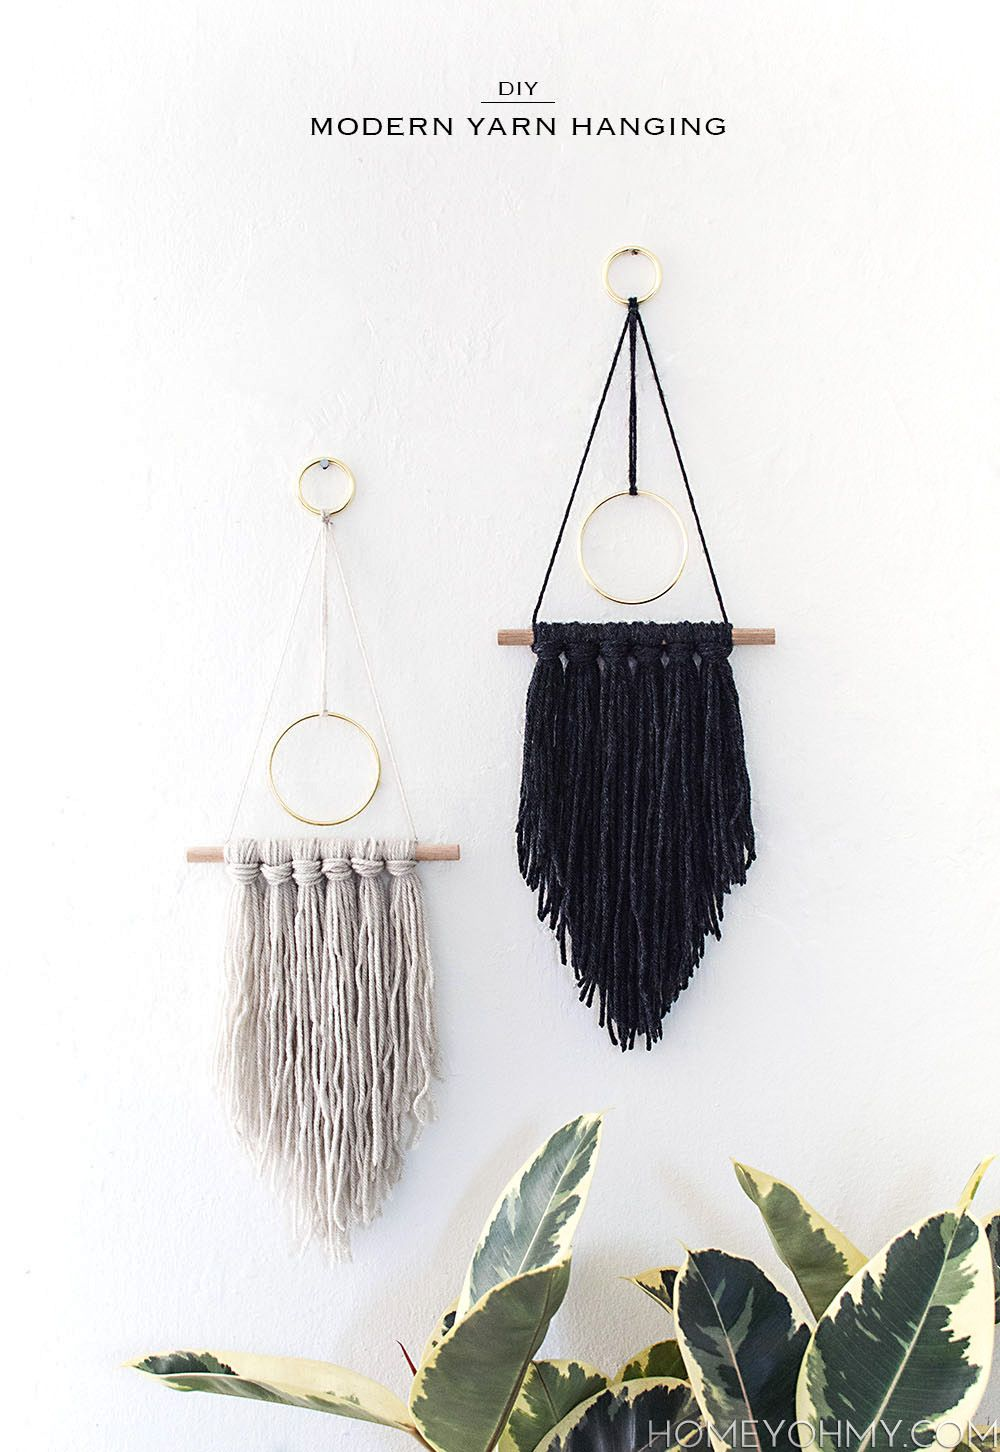 Diy Modern Yarn Hanging Homey Oh My Diy Boho Decor Yarn Diy Yarn Wall Art